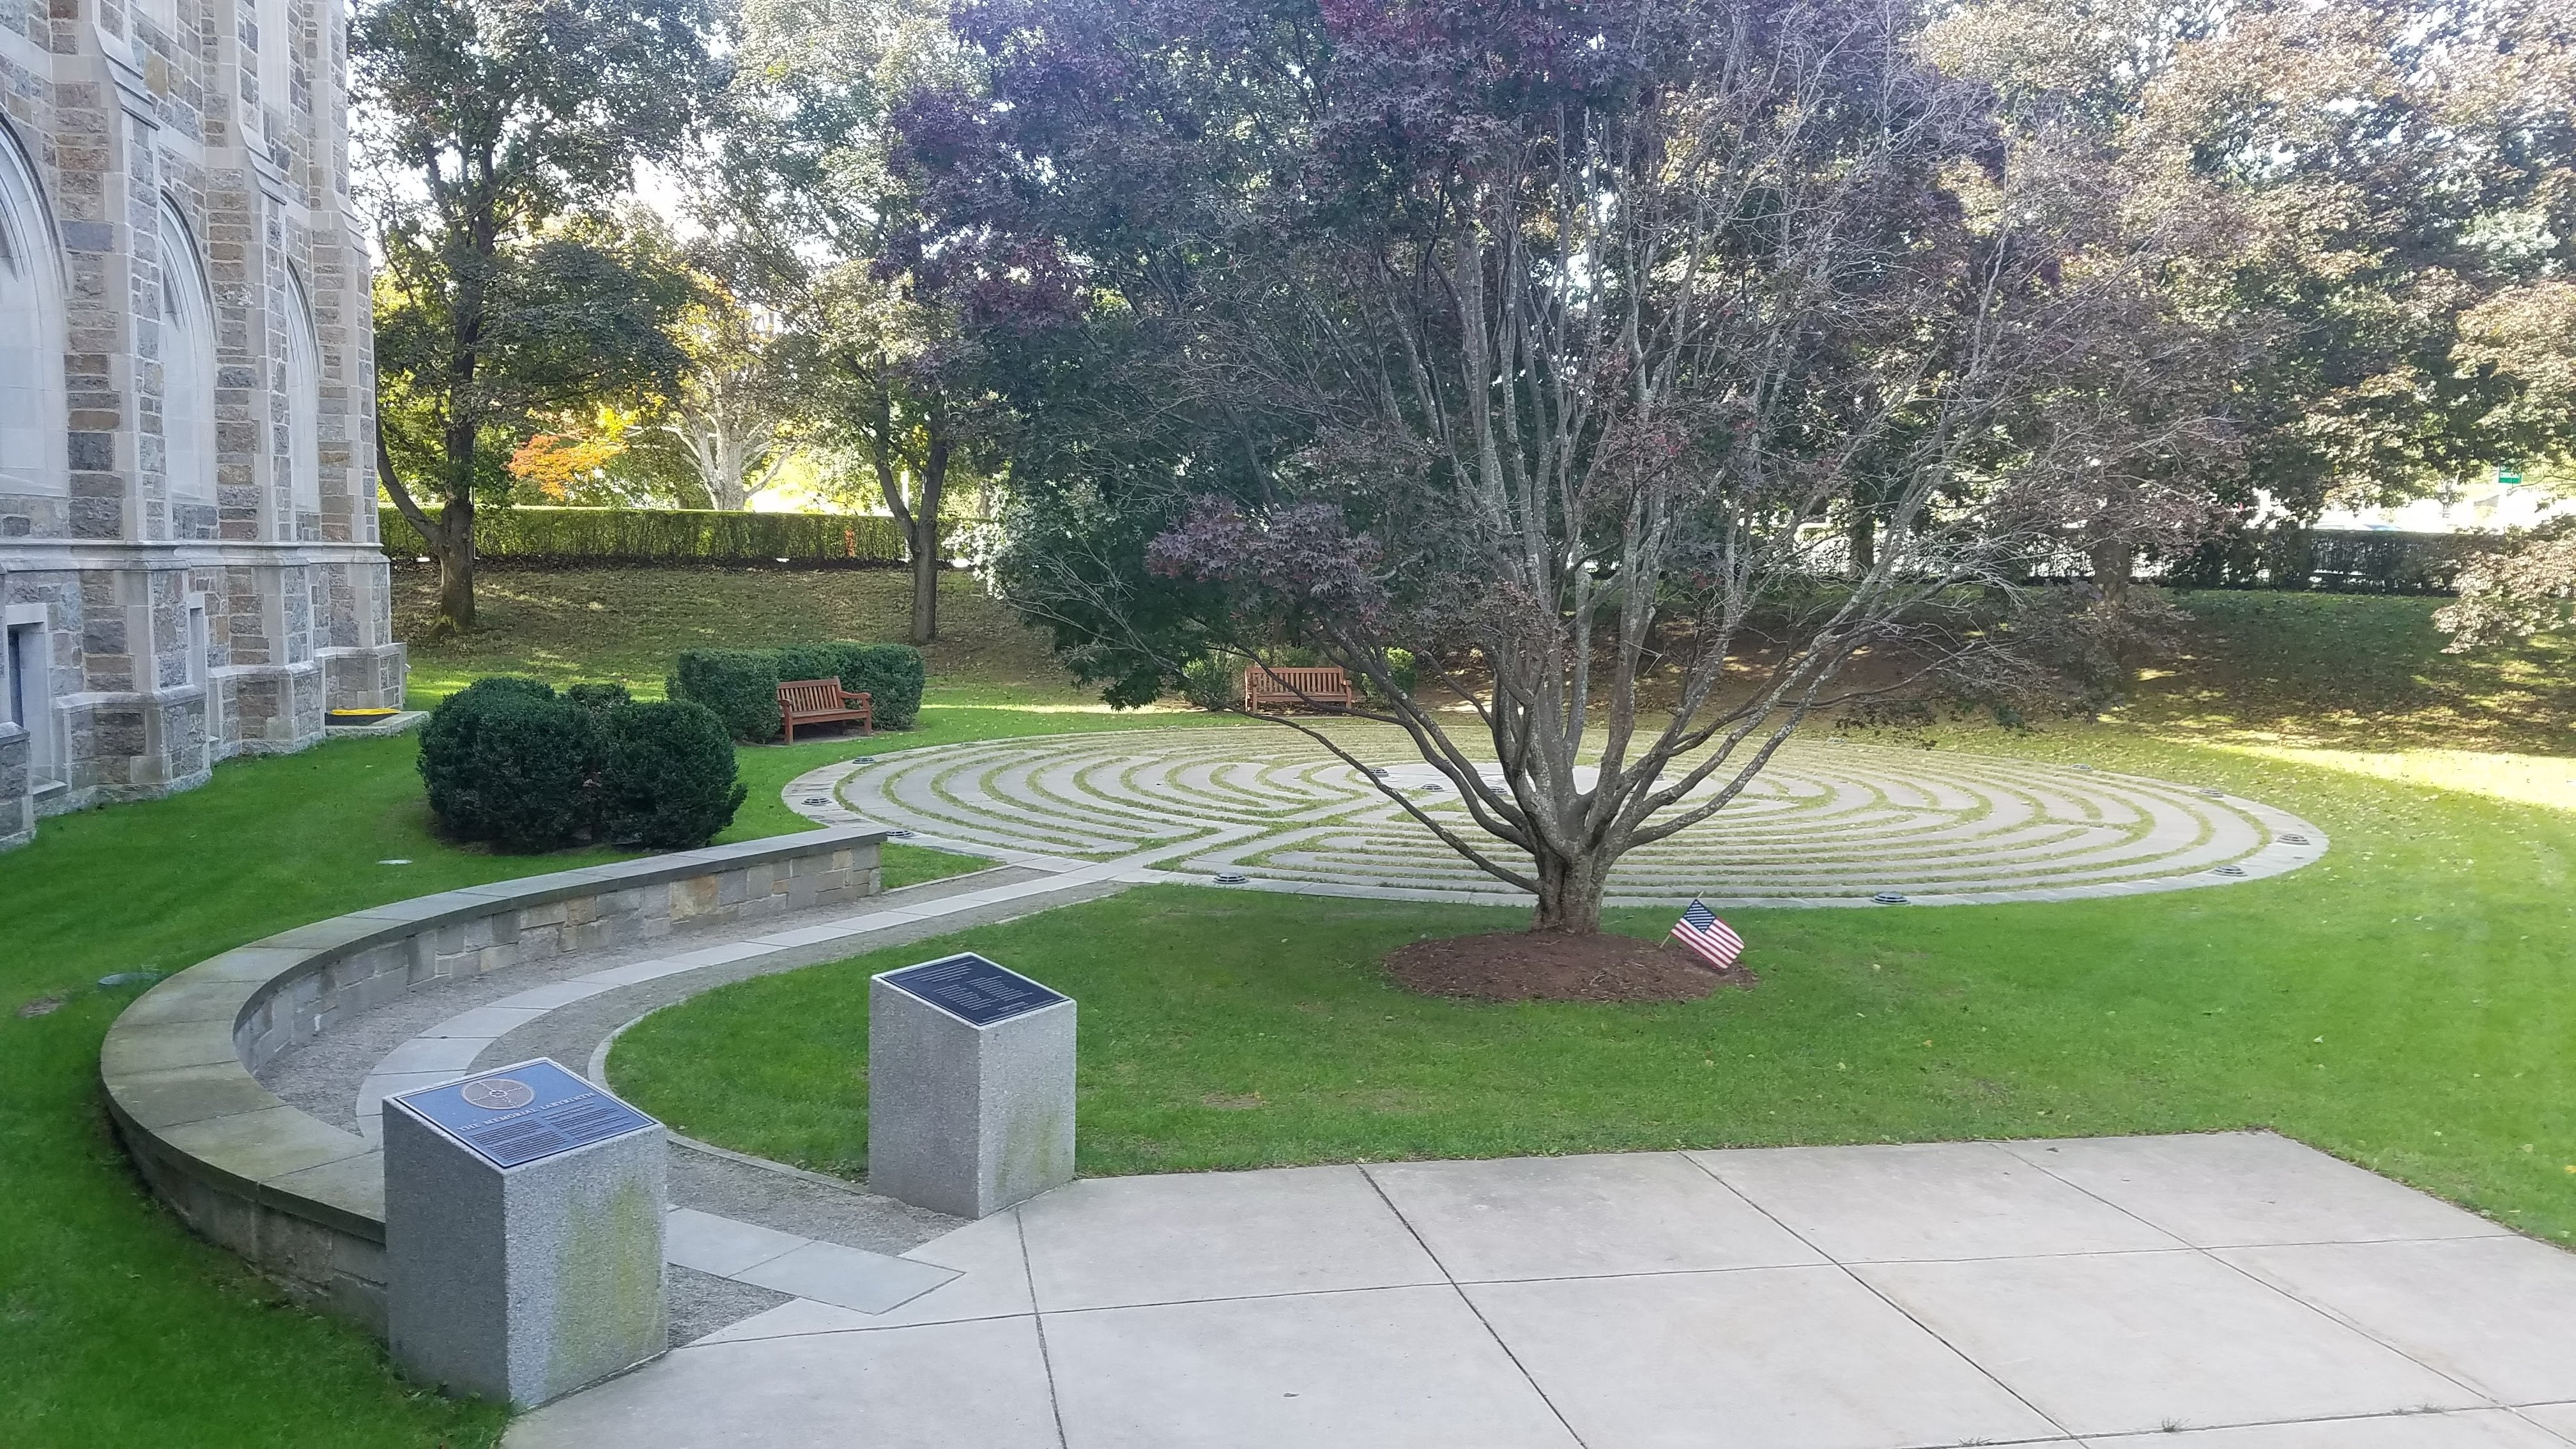 The 9/11 memorial labyrinth